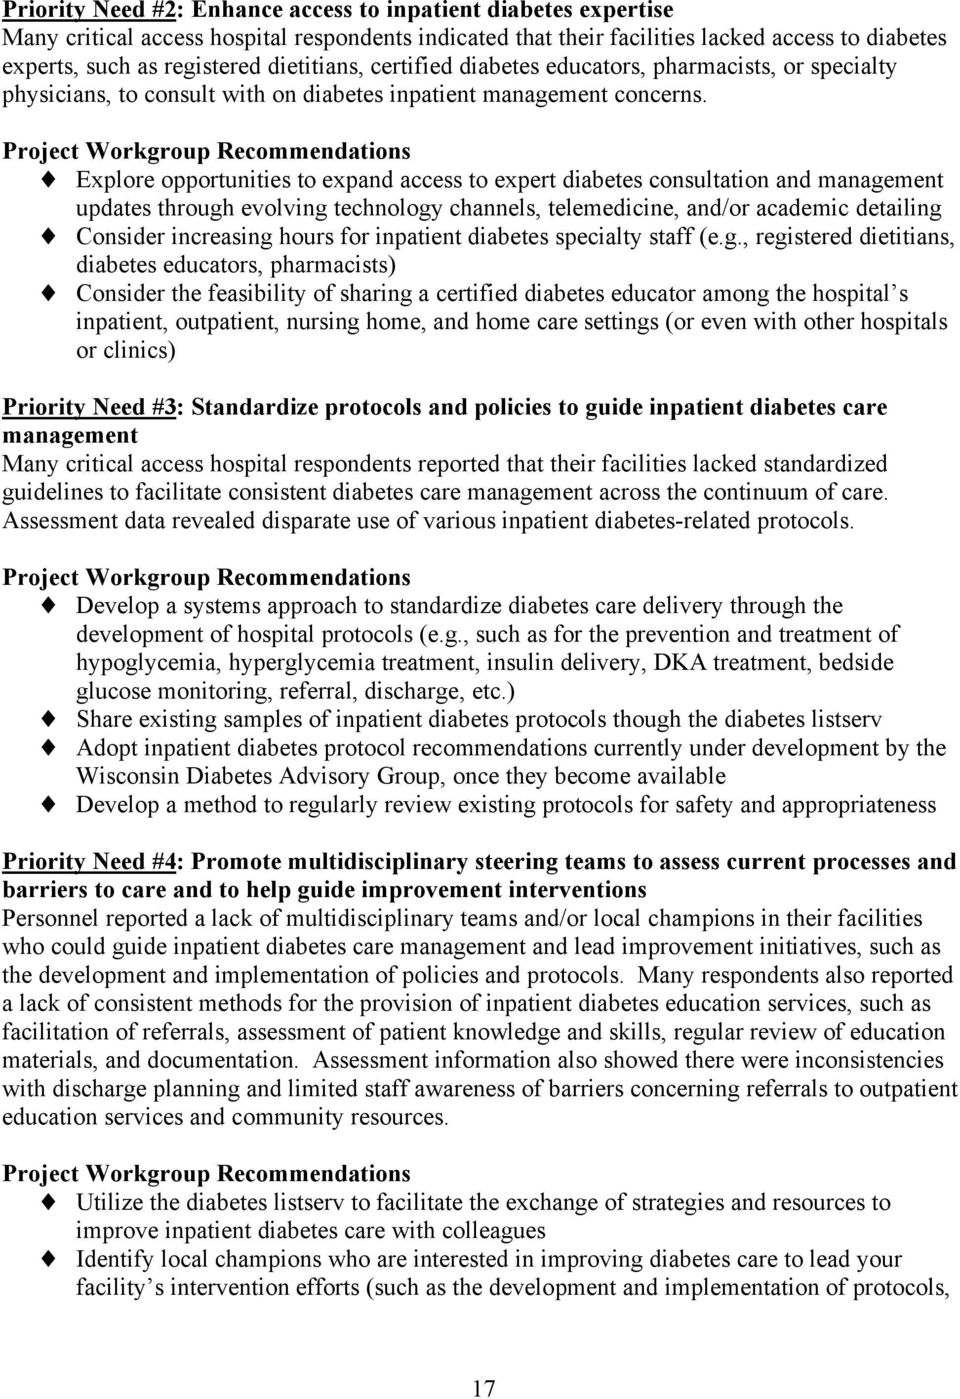 Project Workgroup Recommendations Explore opportunities to expand access to expert diabetes consultation and management updates through evolving technology channels, telemedicine, and/or academic